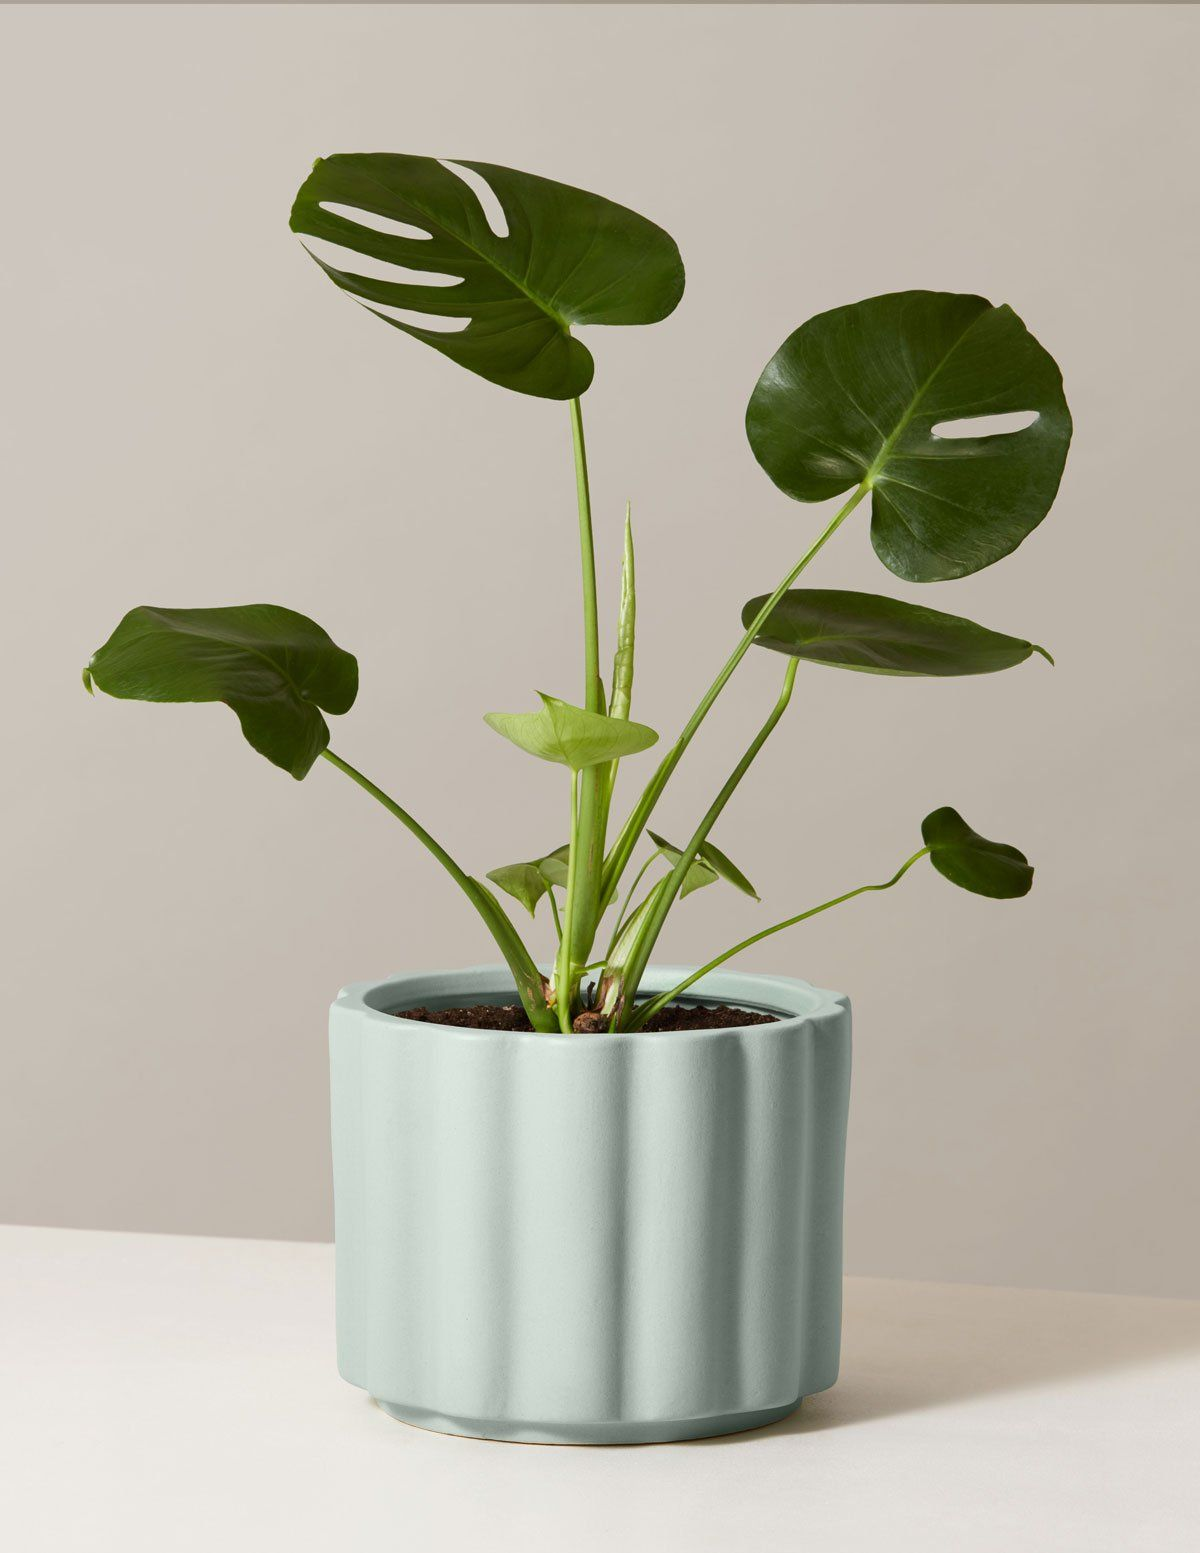 How To Take Care Of Monstera Deliciosa The Swiss Cheese Plant